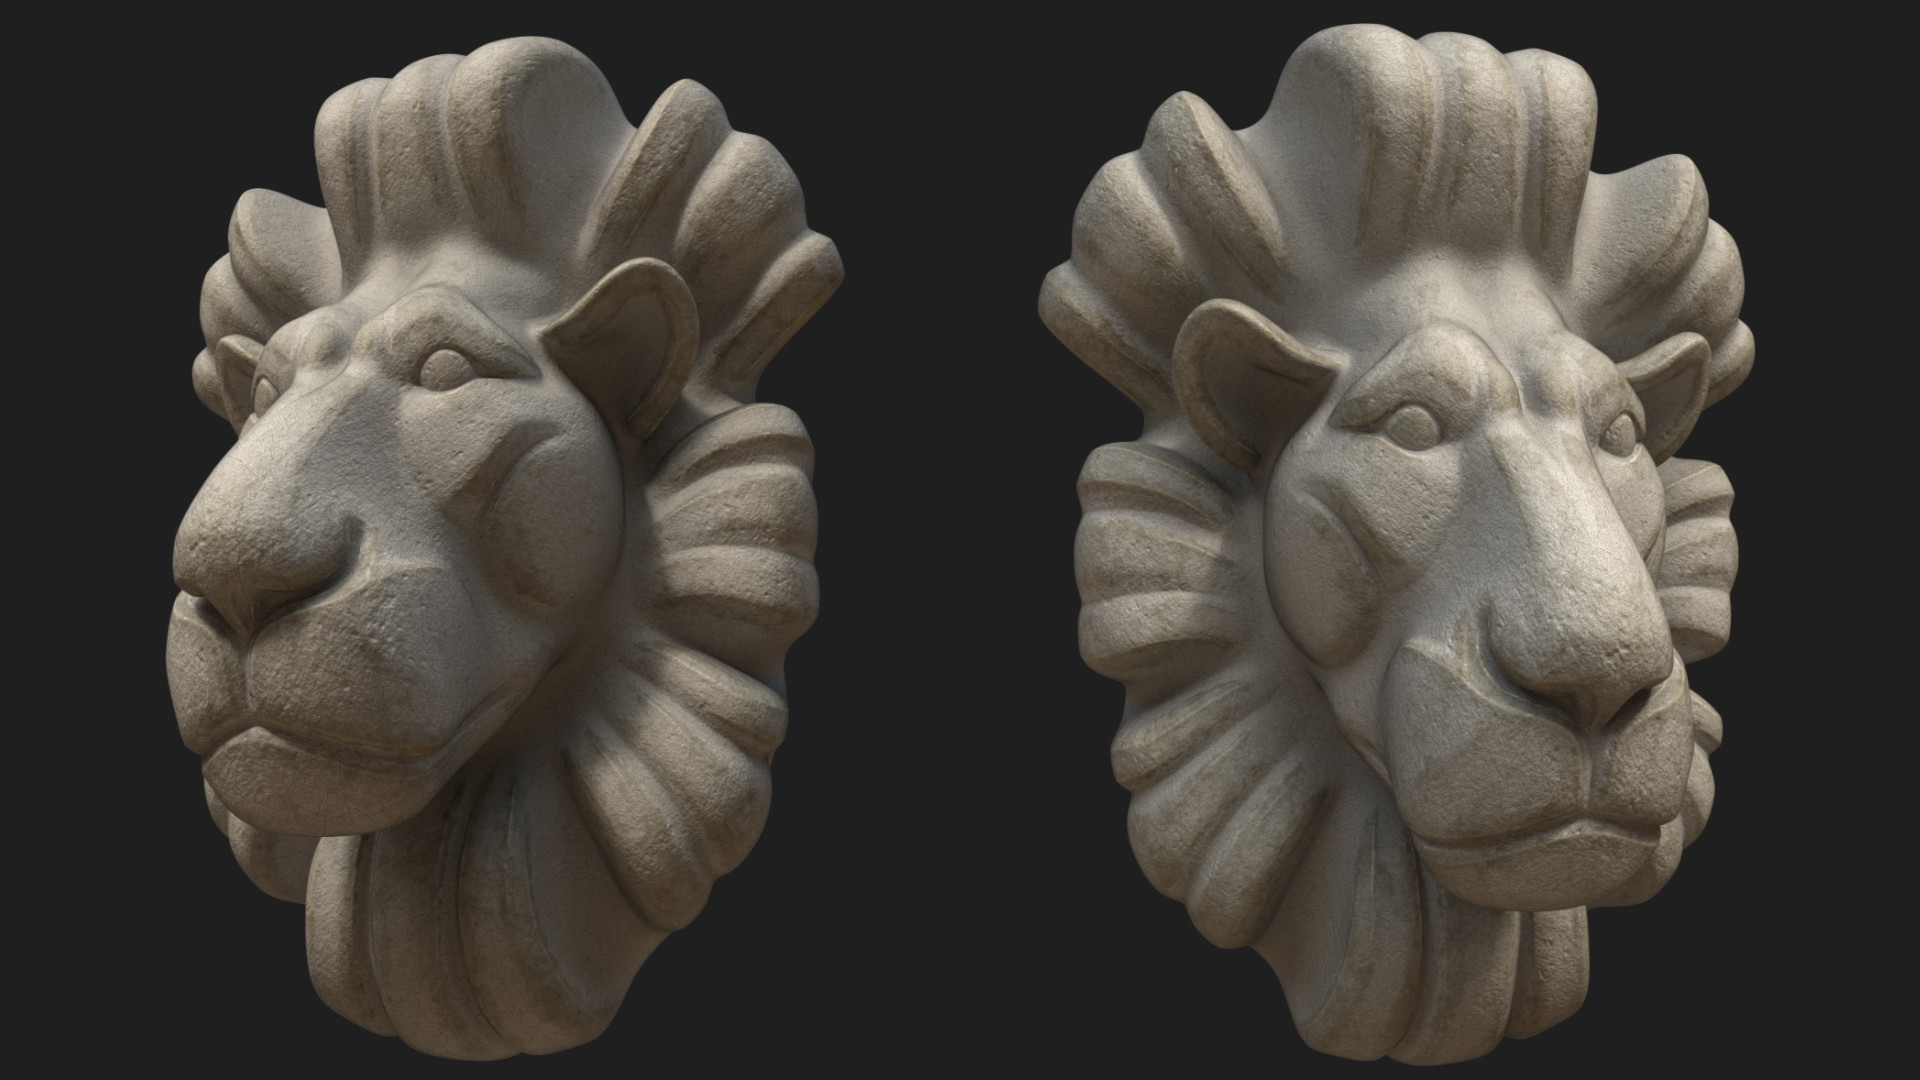 The Lion bust